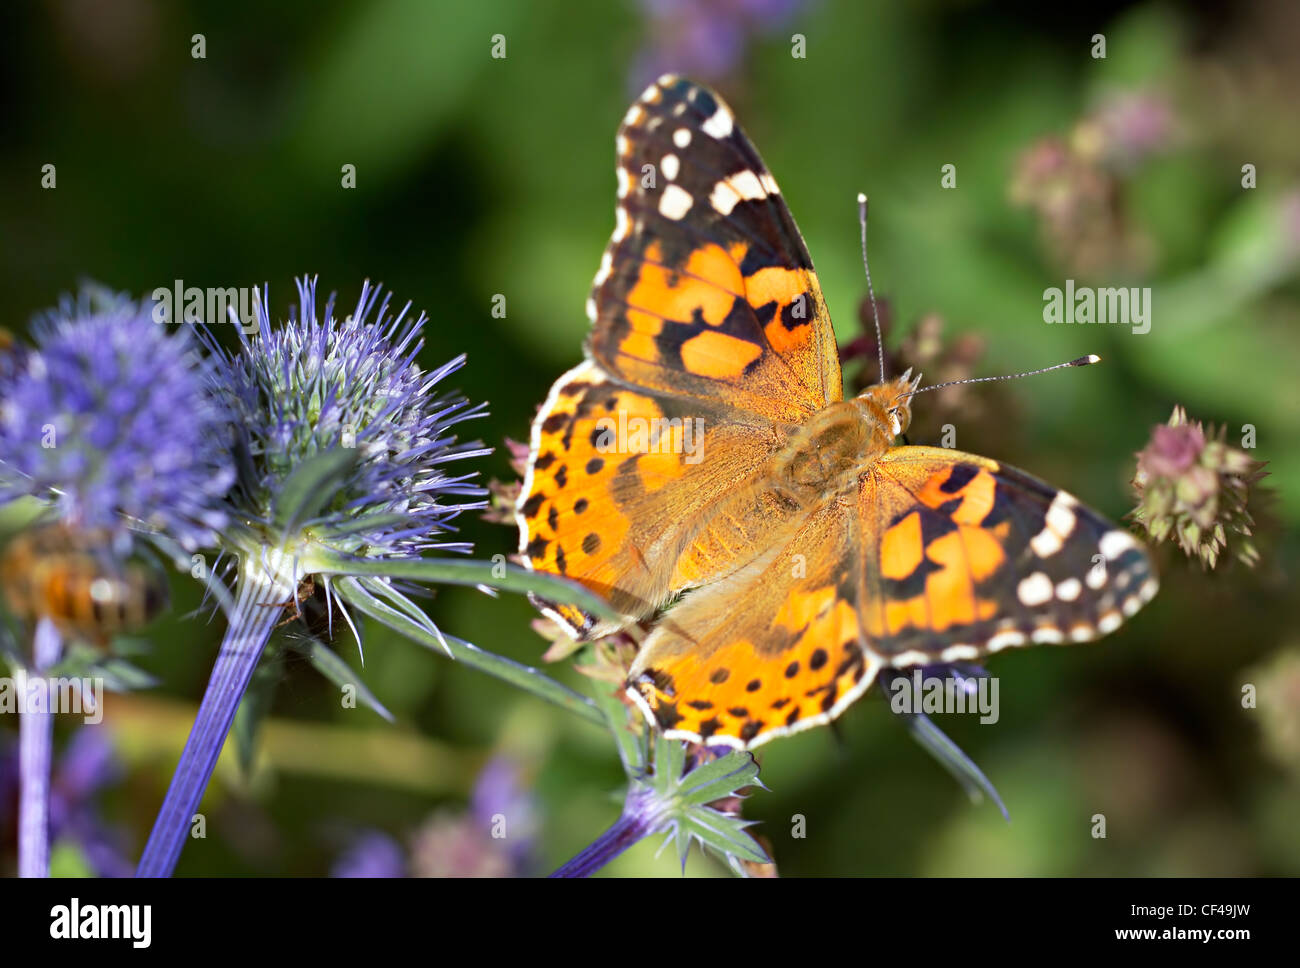 English Summer Garden - Painted Lady (Vanessa cardui) butterfly resting by Echinops Ritro in an English garden in Stock Photo